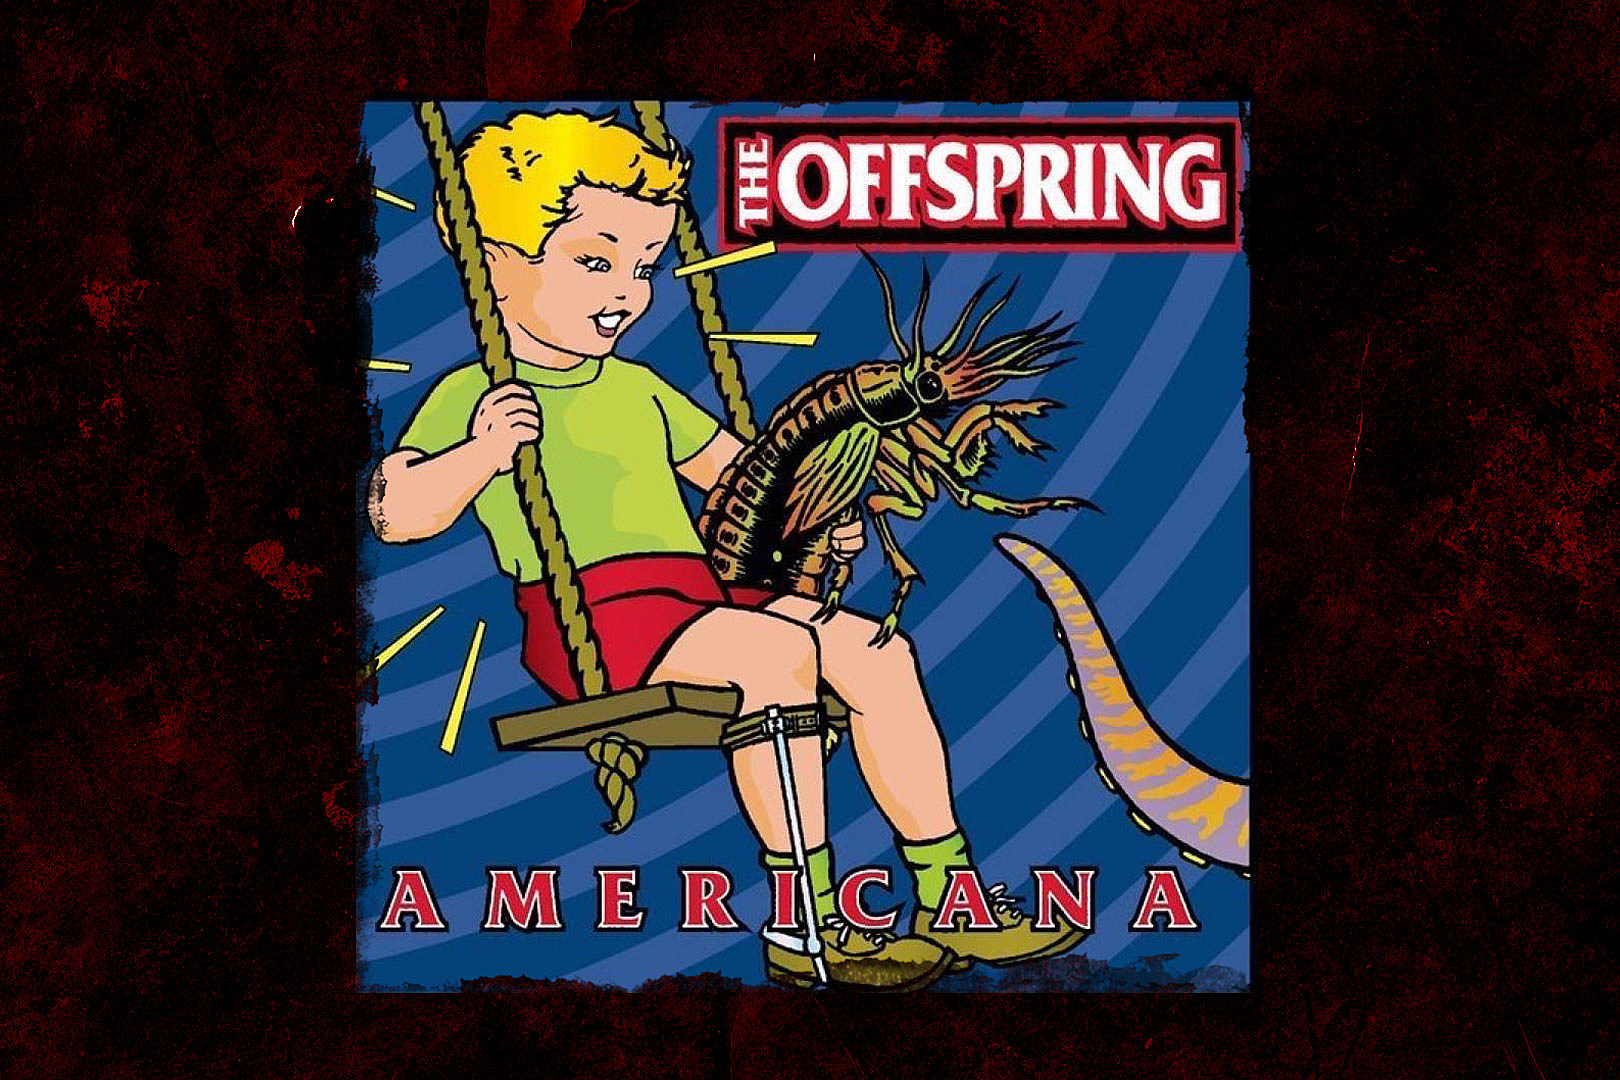 19 Years Ago: The Offspring Reflect Their World With the Release of 'Americana'